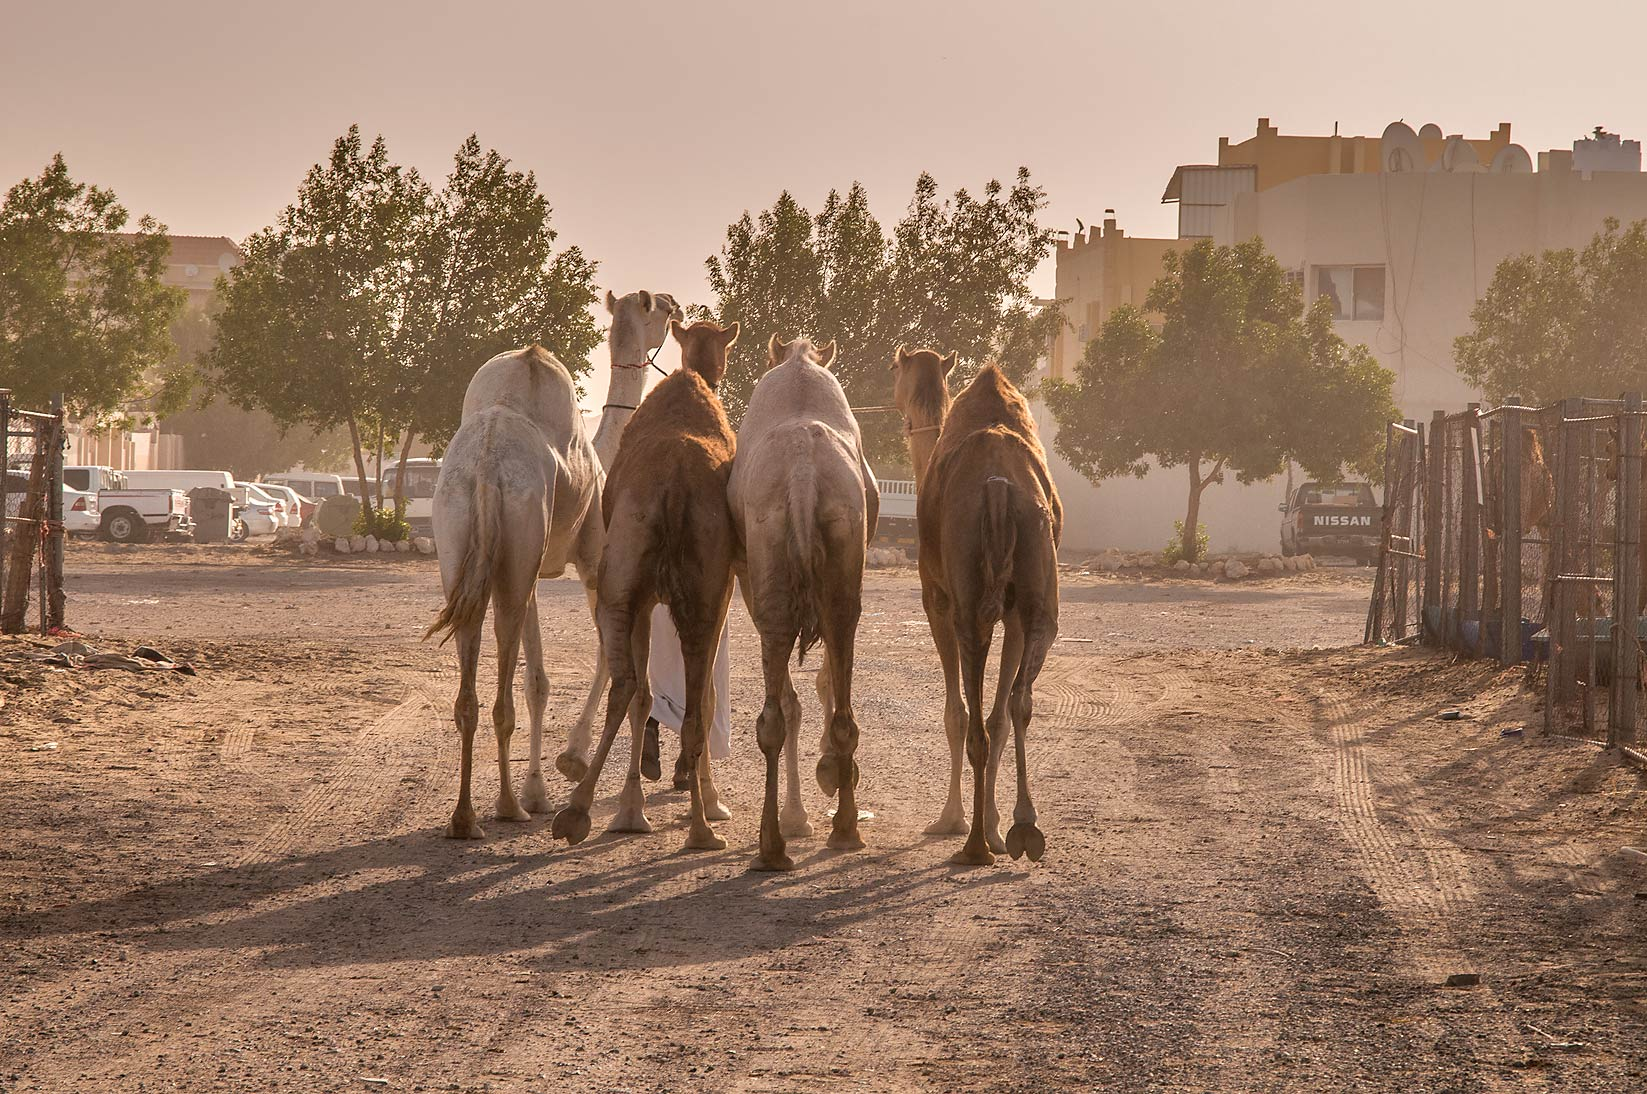 Four camels walking on a dusty road in Livestock Market, Abu Hamour area. Doha, Qatar